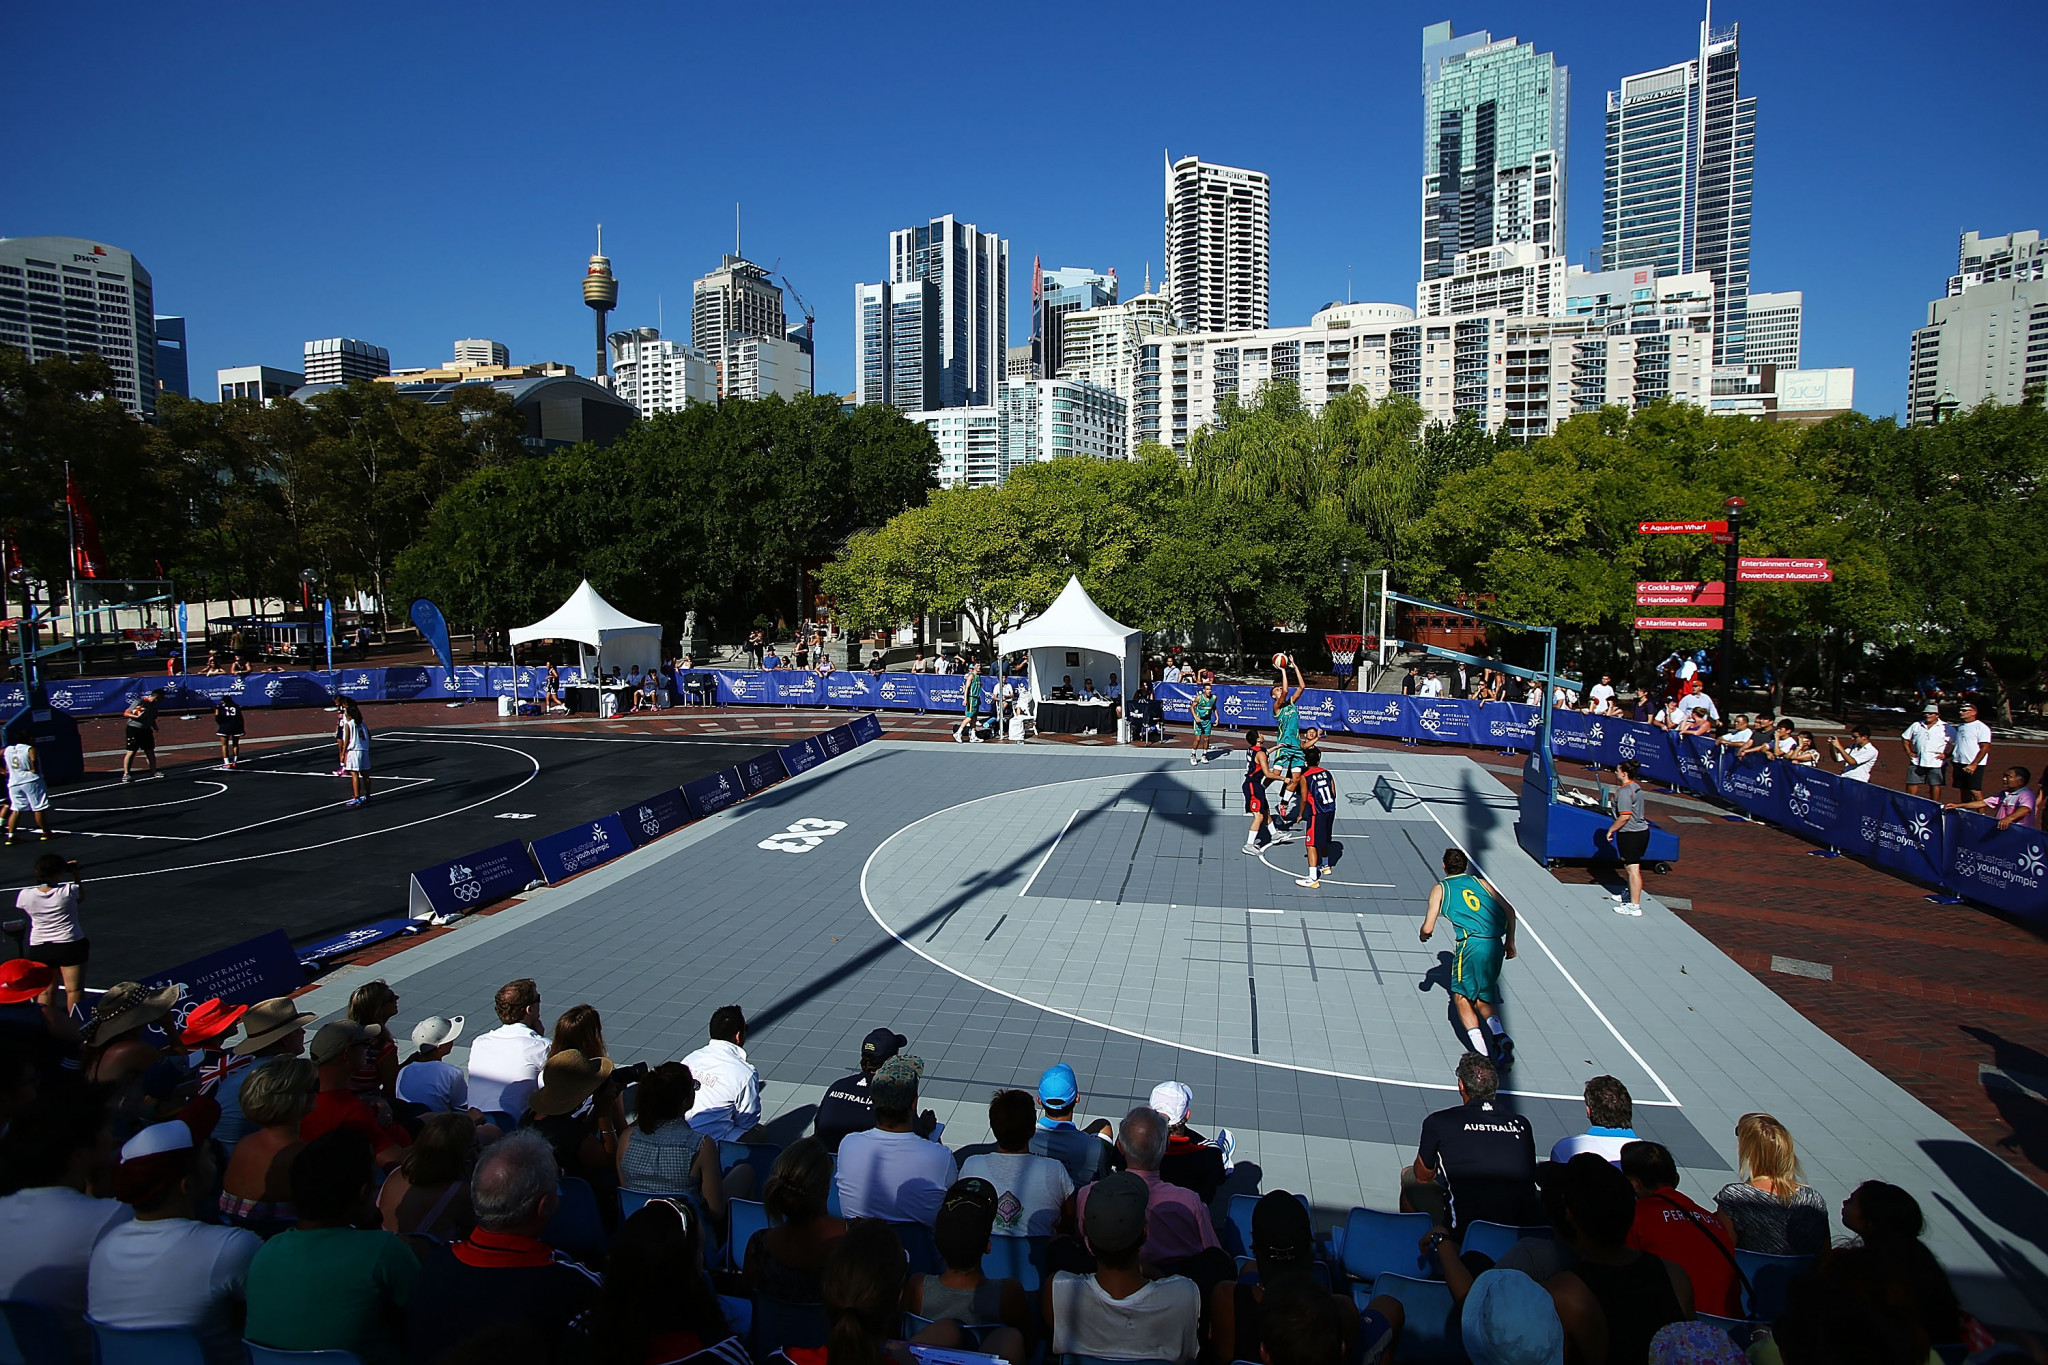 The 3x3 event will allow athletes the chance to earn a spot on the FIBA World Tour ©Getty Images